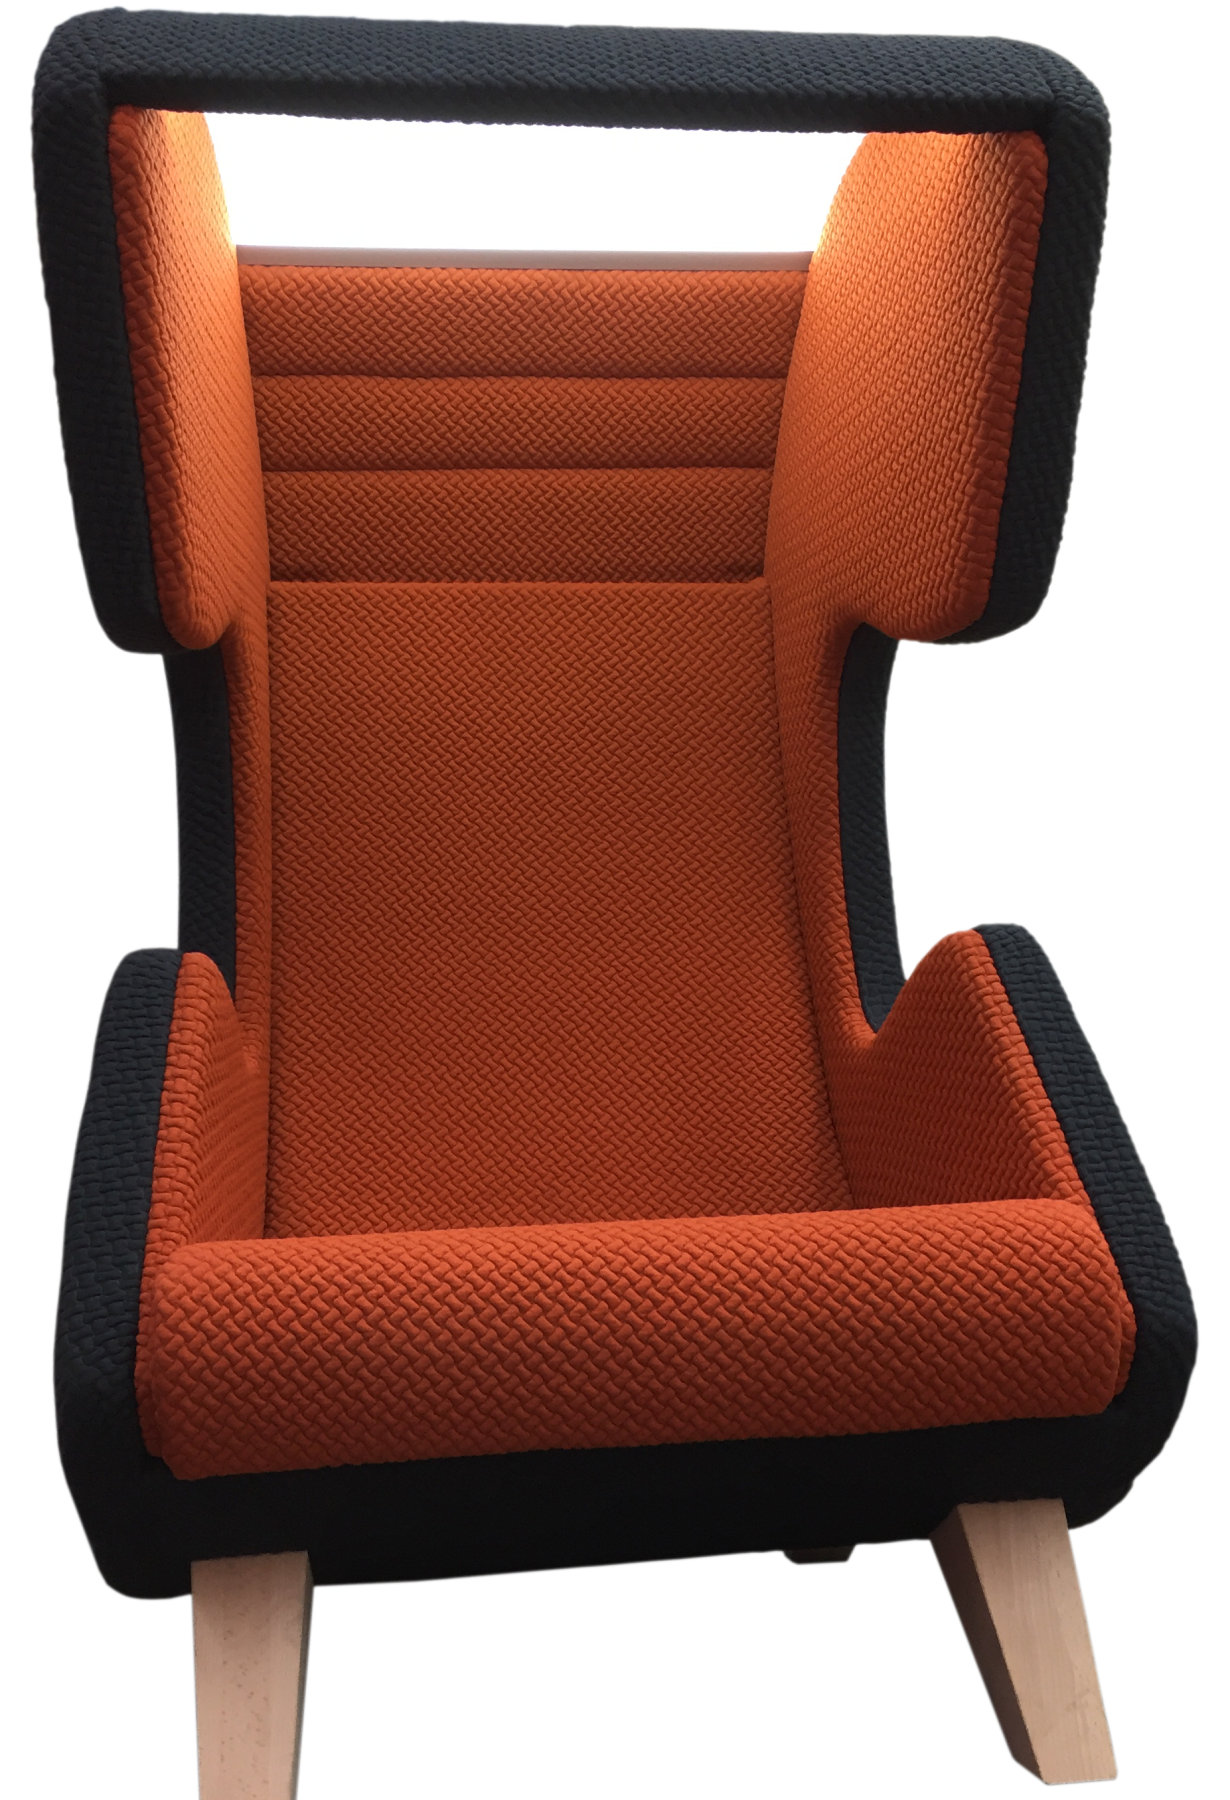 Osram's Chronogy™ HCL chairs